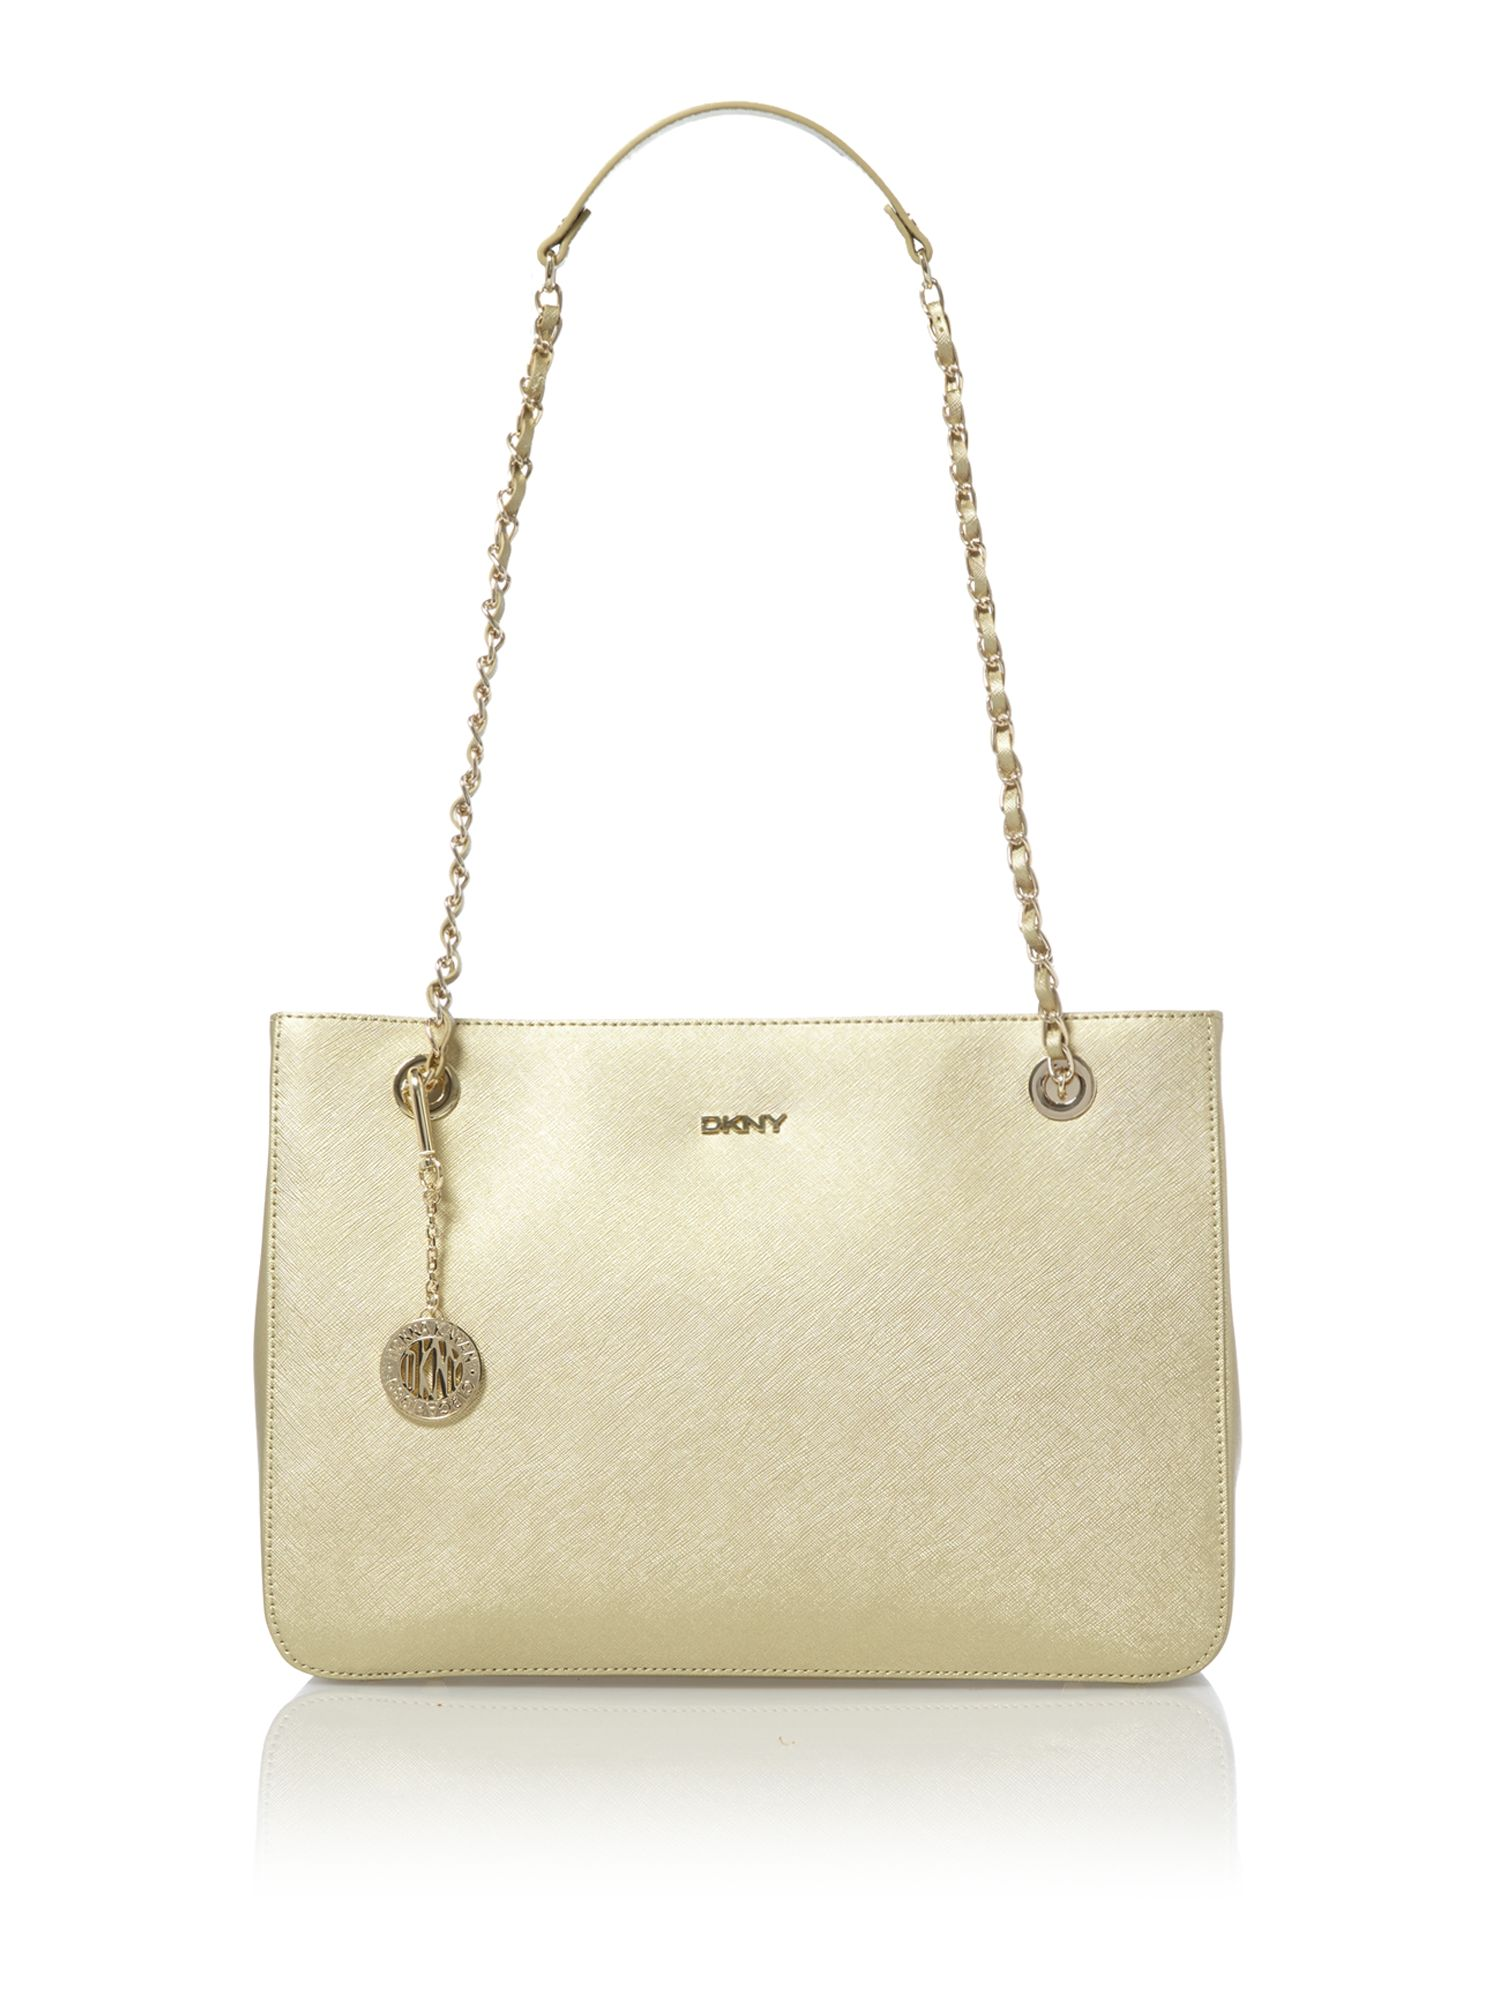 Saffiano gold medium tote bag